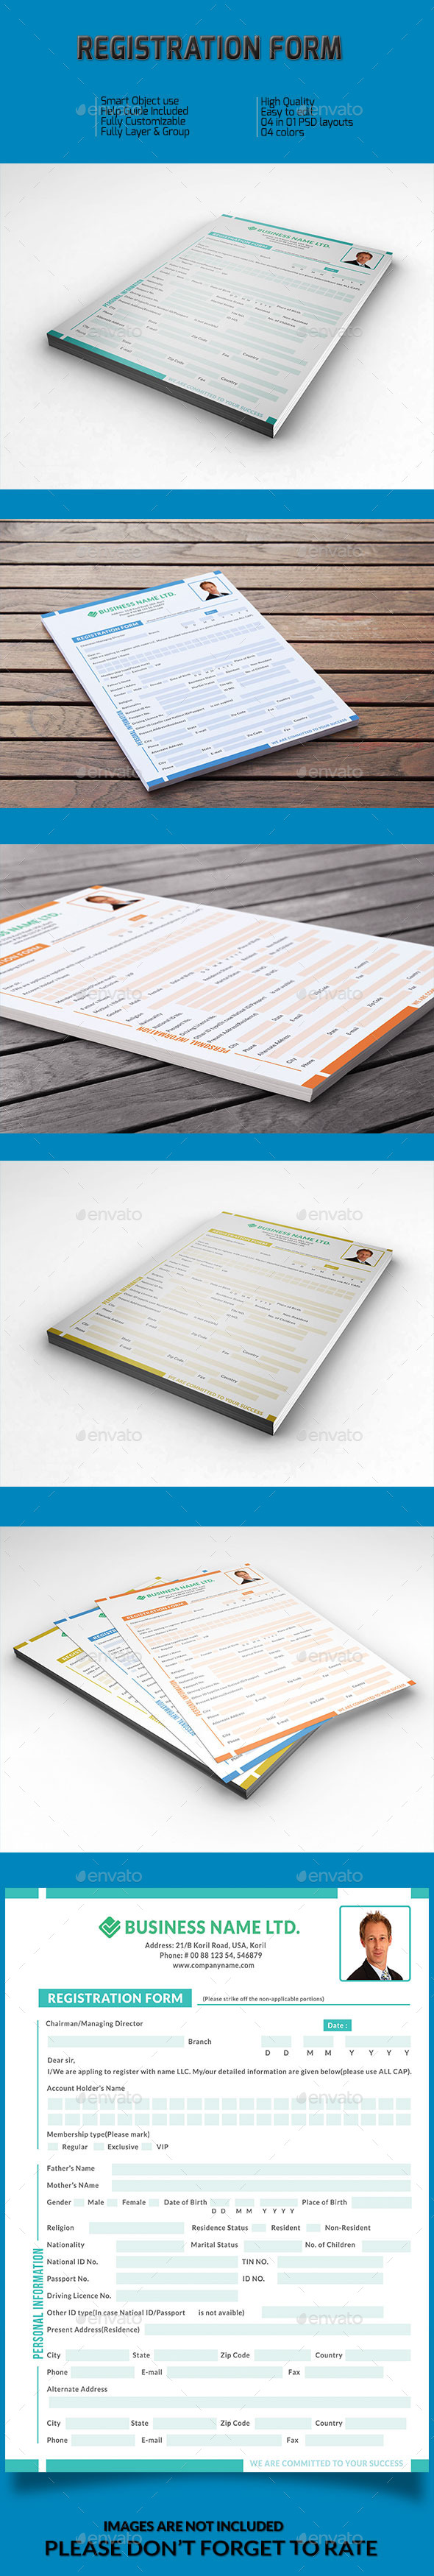 Registration Form v-01 - Miscellaneous Print Templates